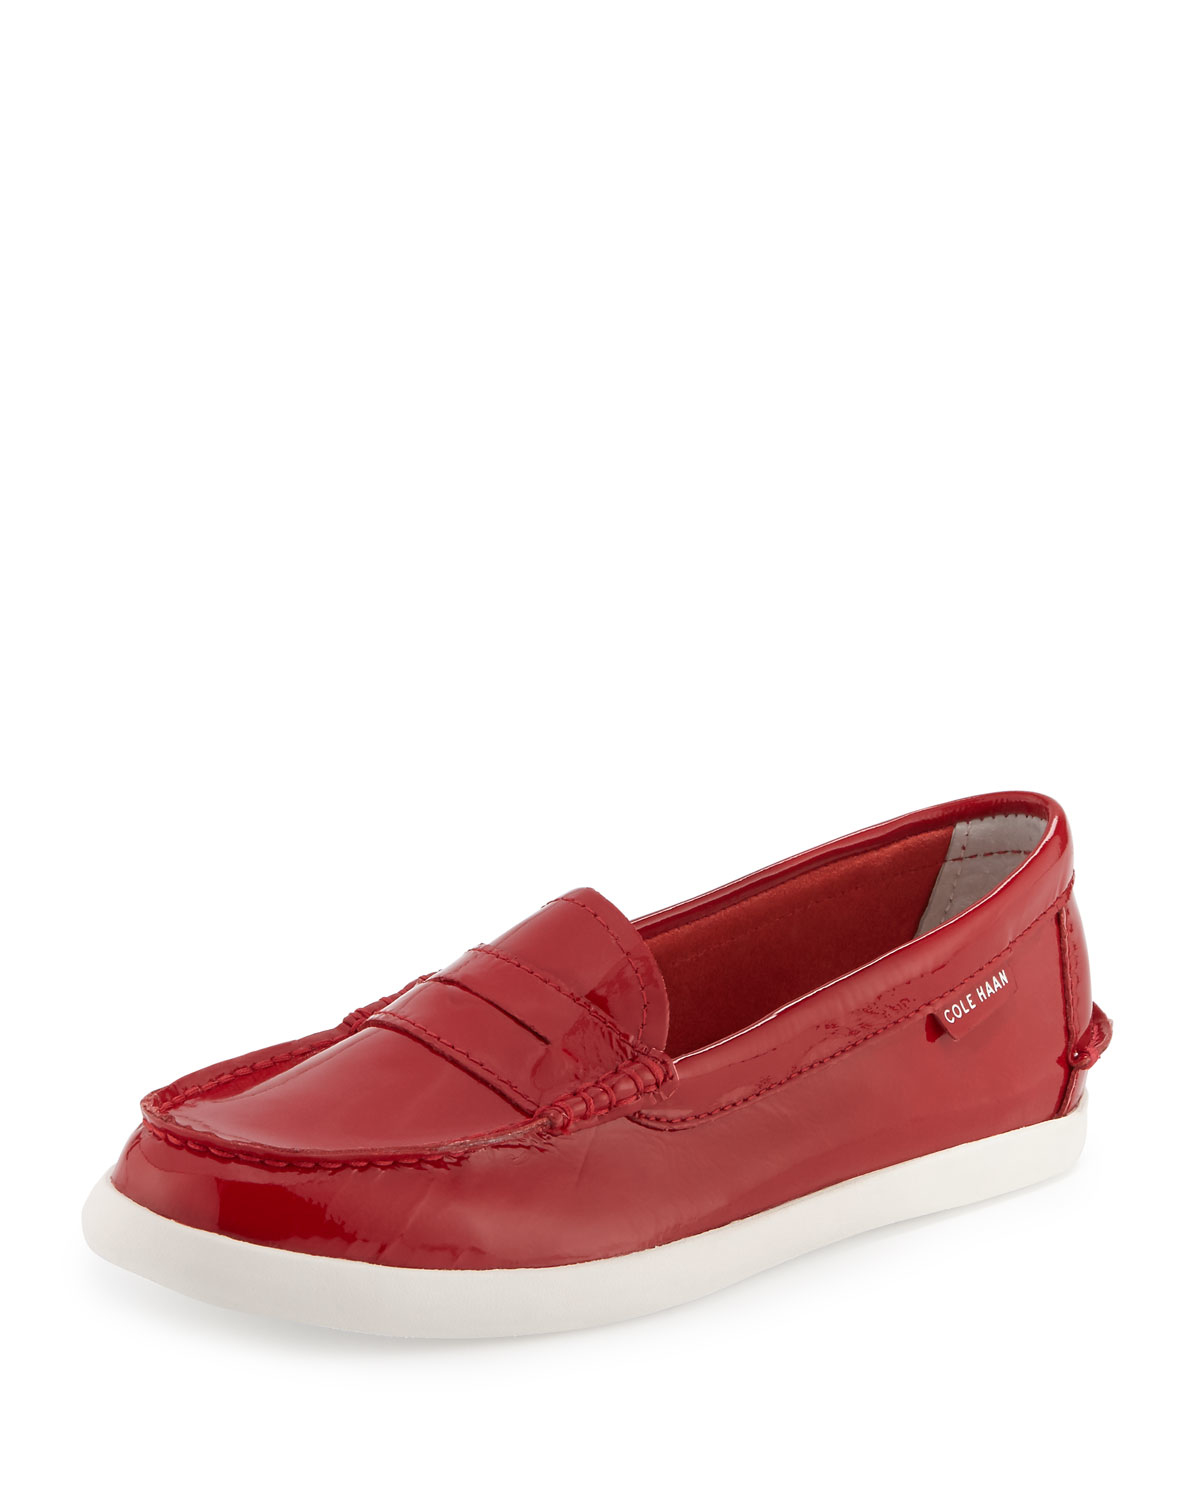 Klein Calvin Women's Patent Red Loafer Rock Black Flat EDONA Women's Loafer Flat Red EDONA Klein Patent Rock Black Calvin.